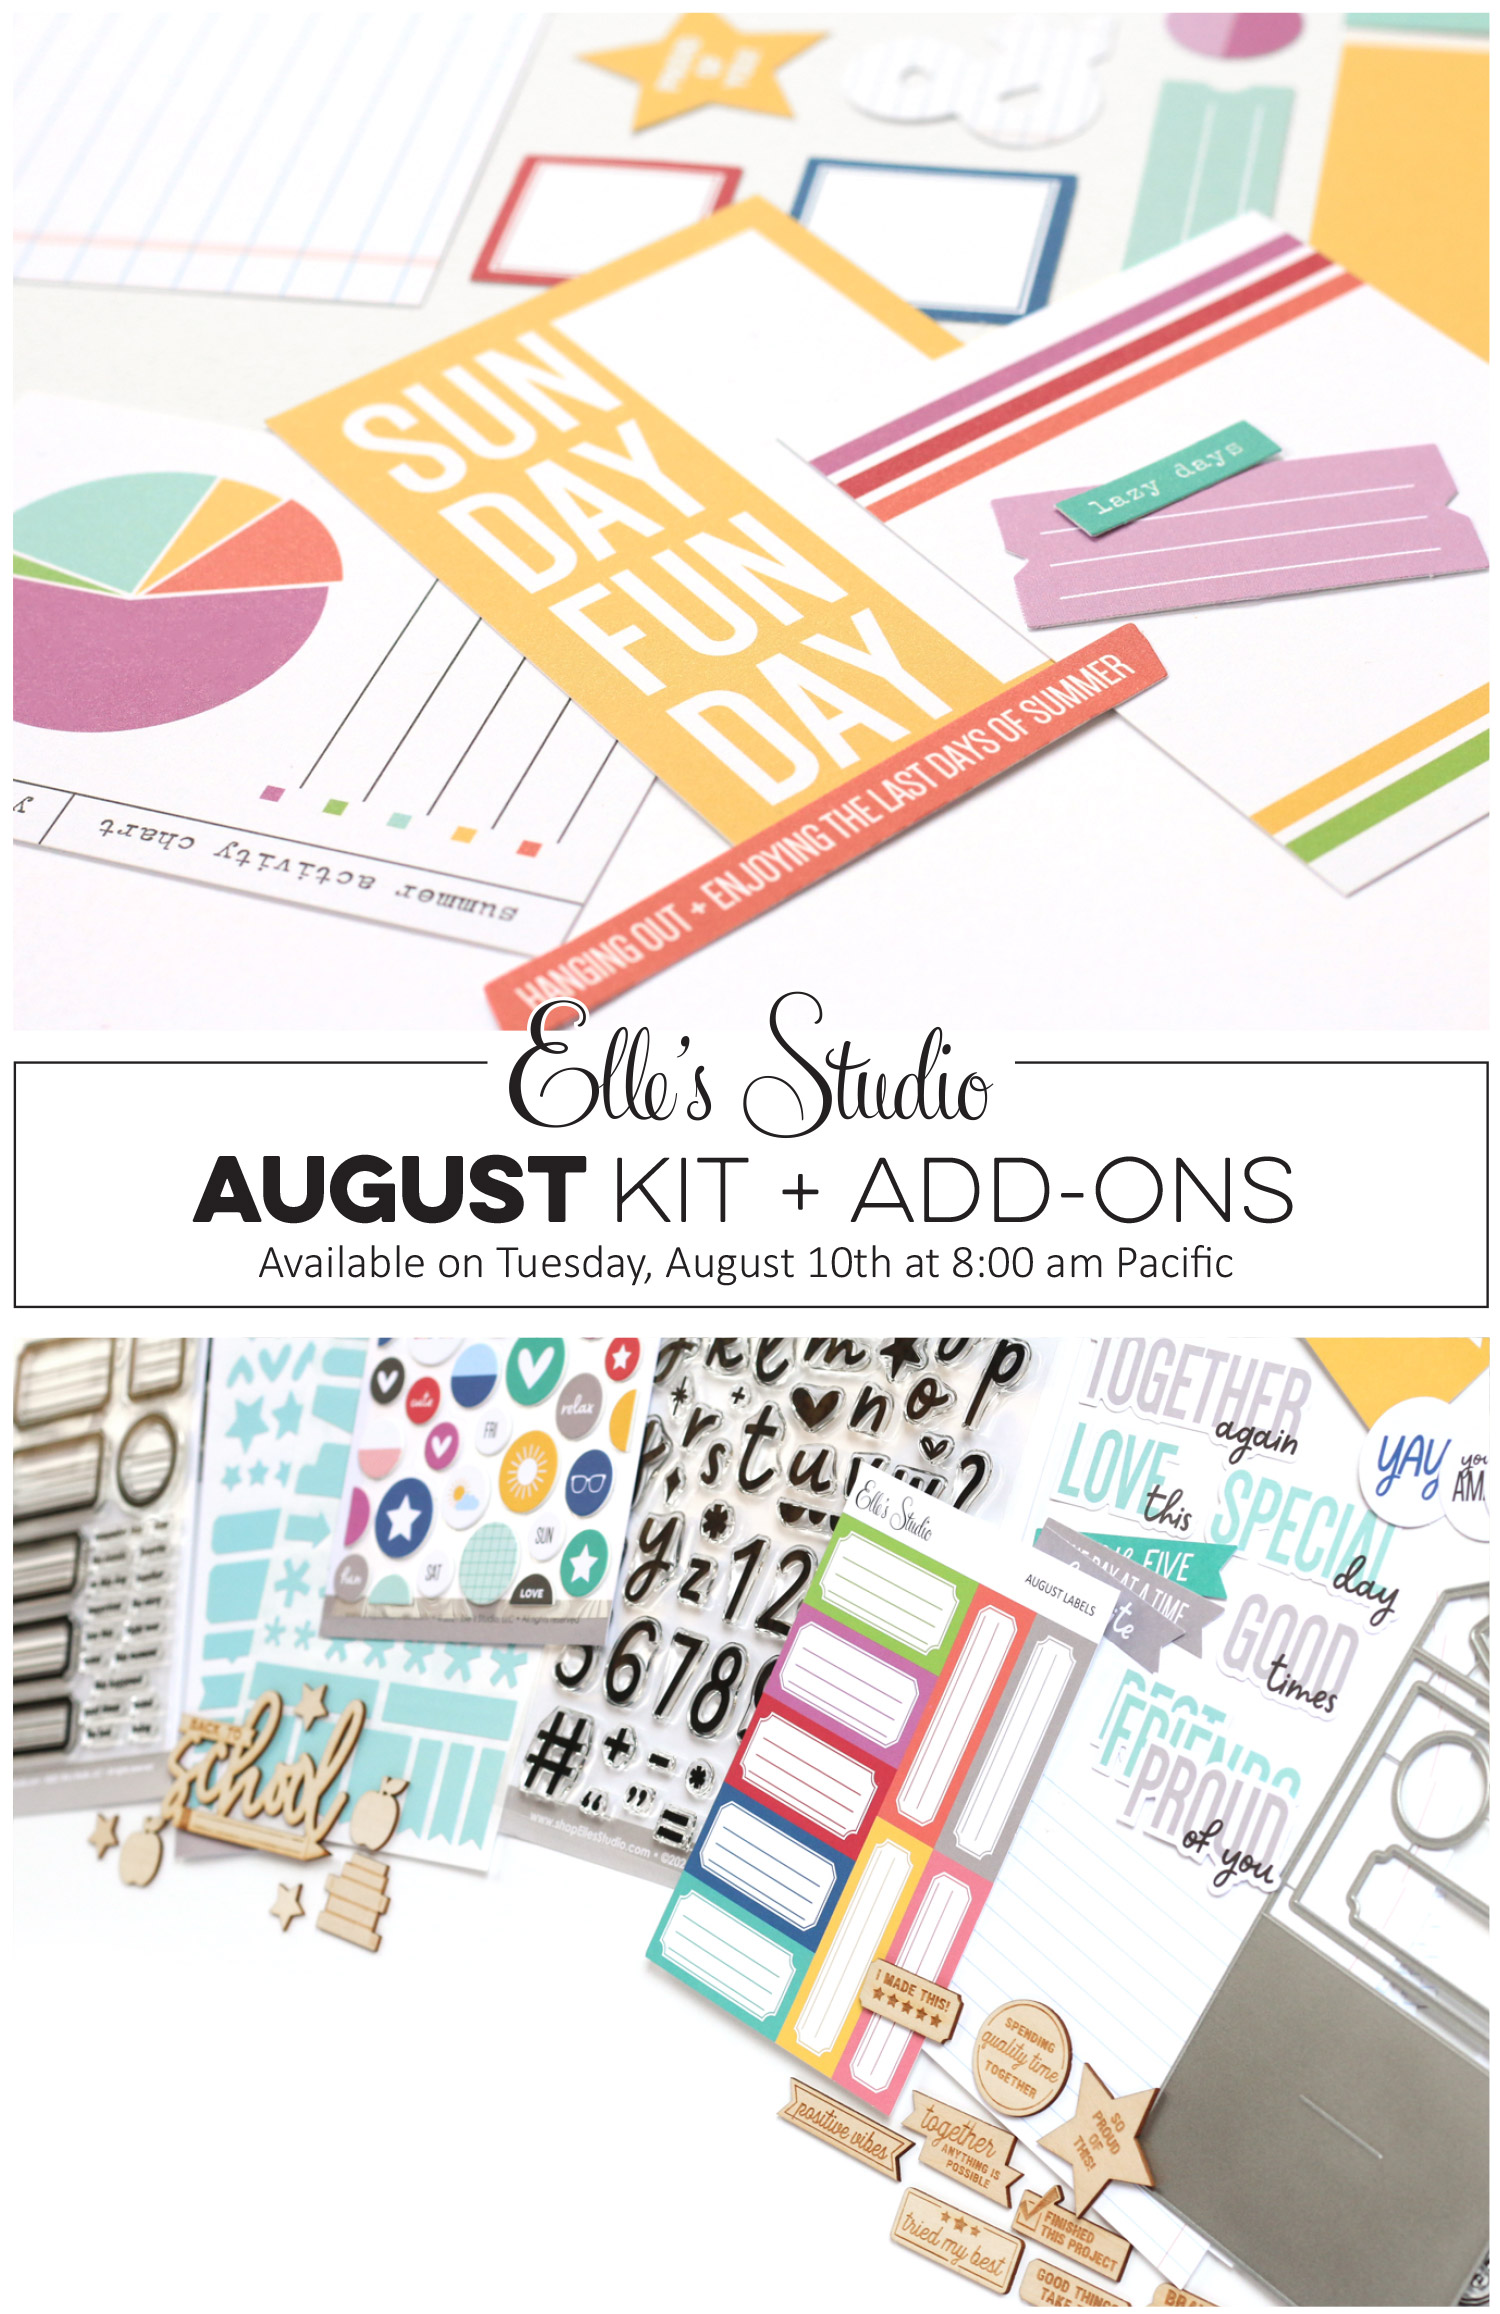 A sneak peek of our August 10th reveal!